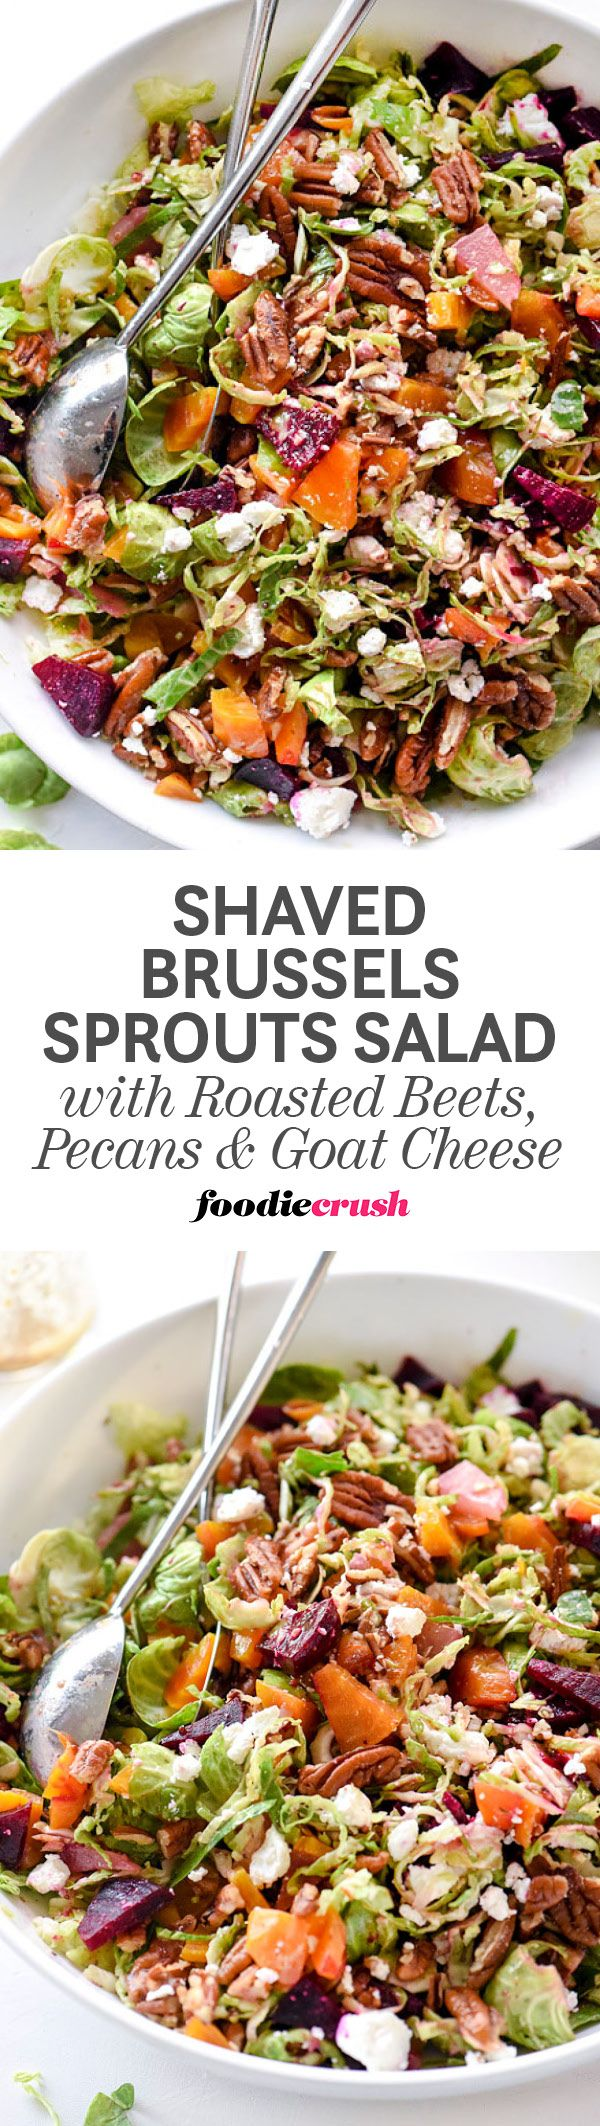 This hearty Brussels sprouts salad sweetened with roasted beets and crunchy pecans is delicious as a vegetarian main dish or served as a side. The tangy mustard dressing softens the bite of the Brussels sprouts with a hint of maple syrup that's topped wit